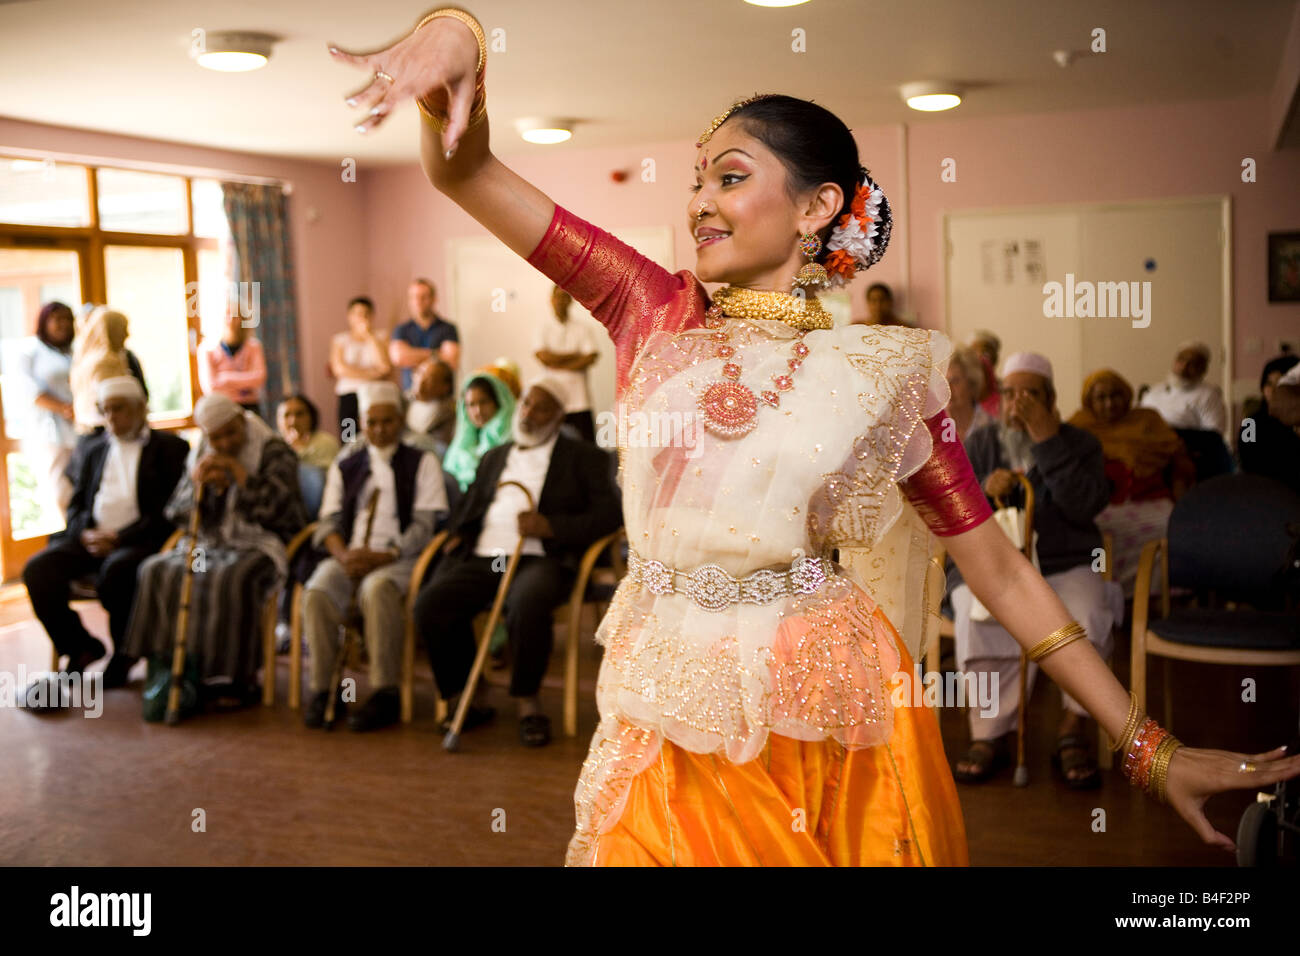 Bangladeshi dancer performs at an old people's community centre in Tower Hamlets - Stock Image